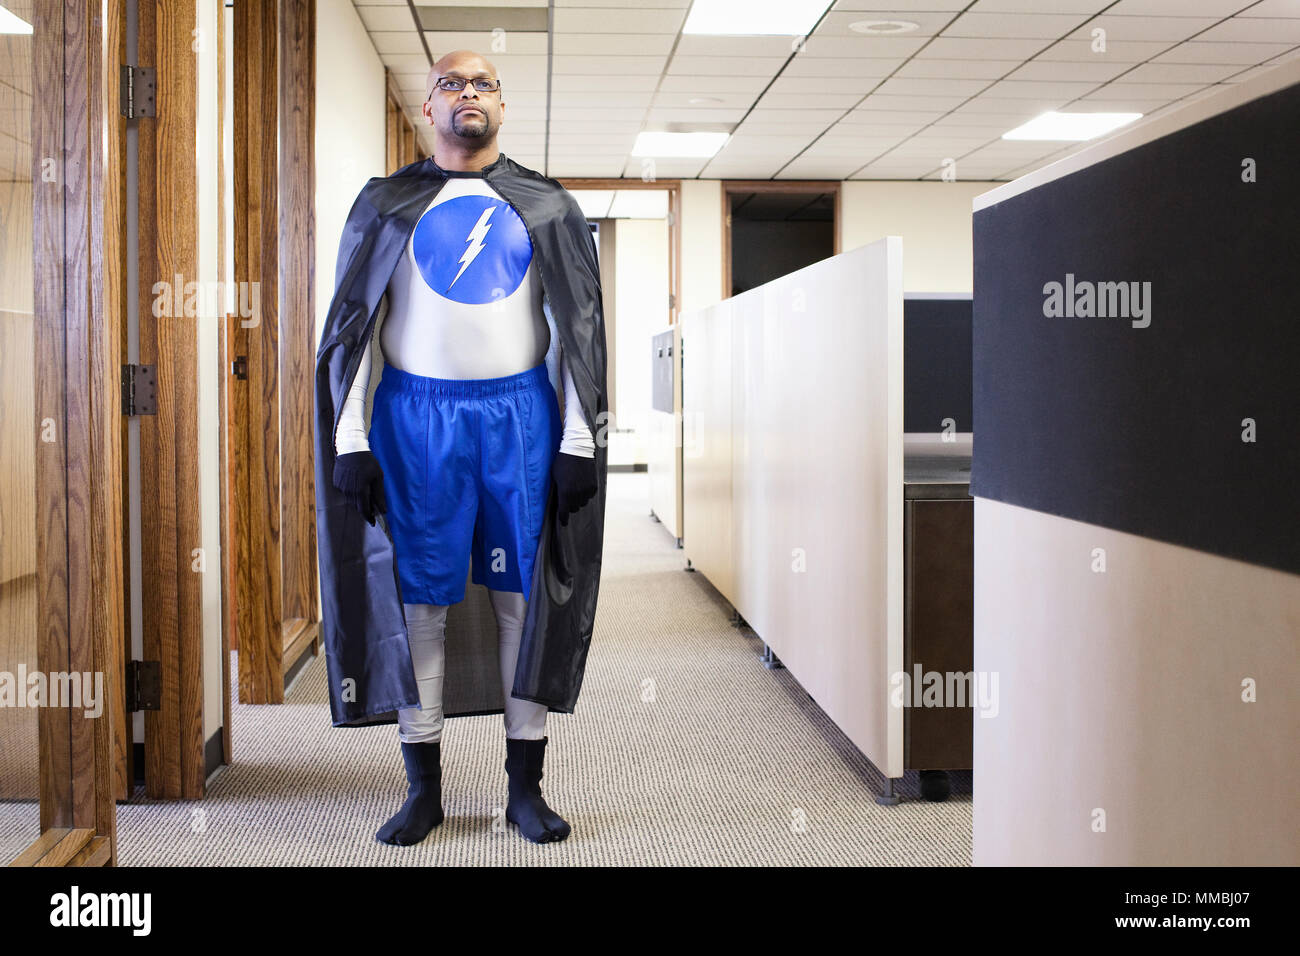 A black businessman office super hero standing in an office hallway. - Stock Image